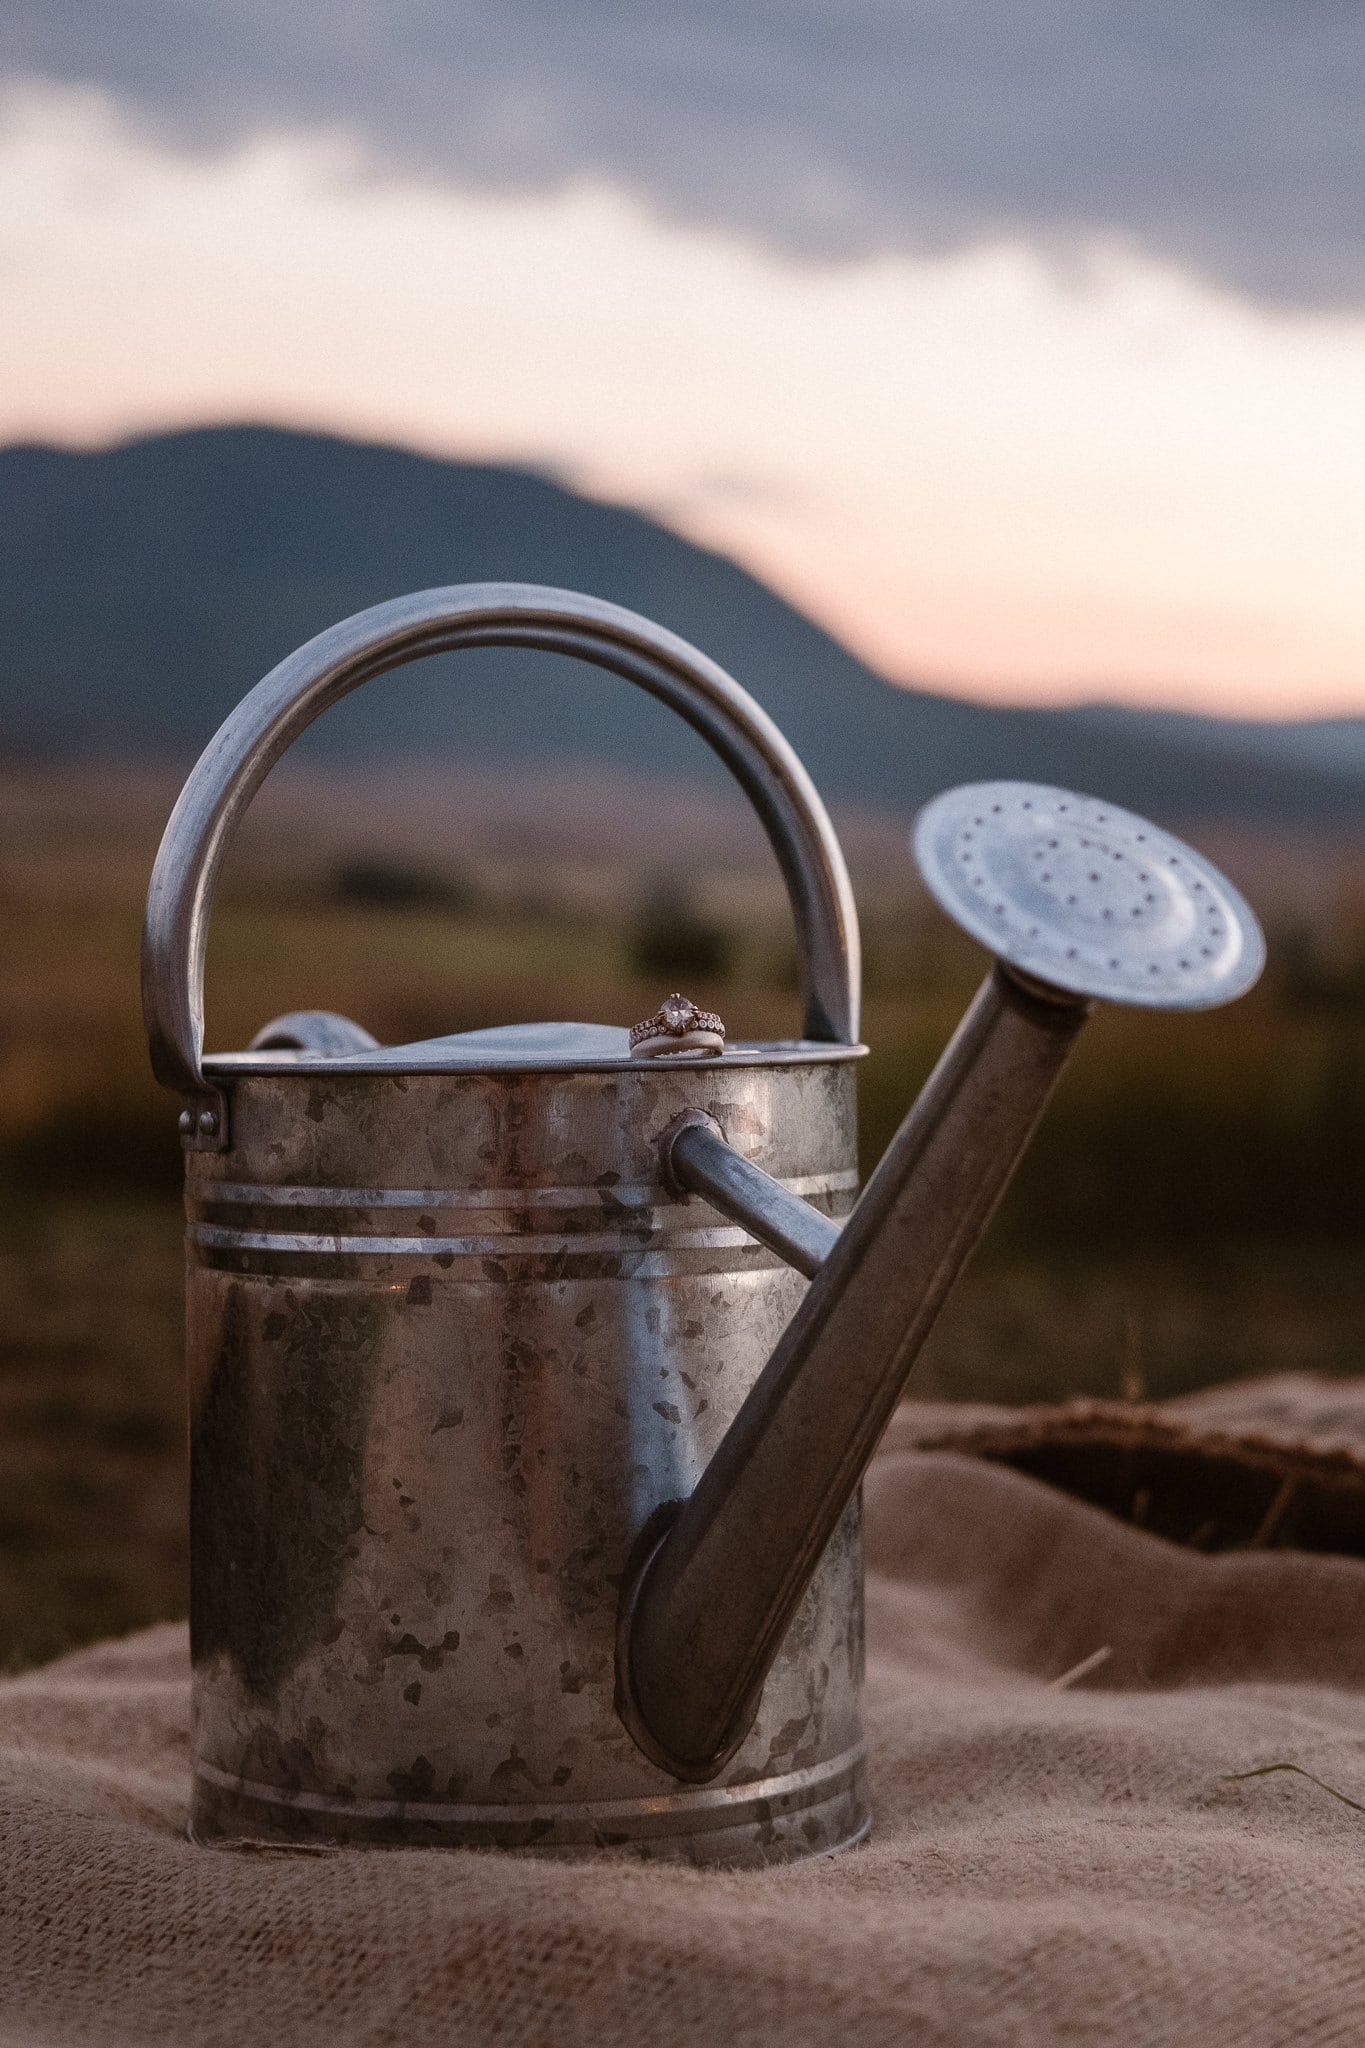 Steamboat Springs wedding photographer, La Joya Dulce wedding, Colorado ranch wedding venues, wedding rings on top of watering can